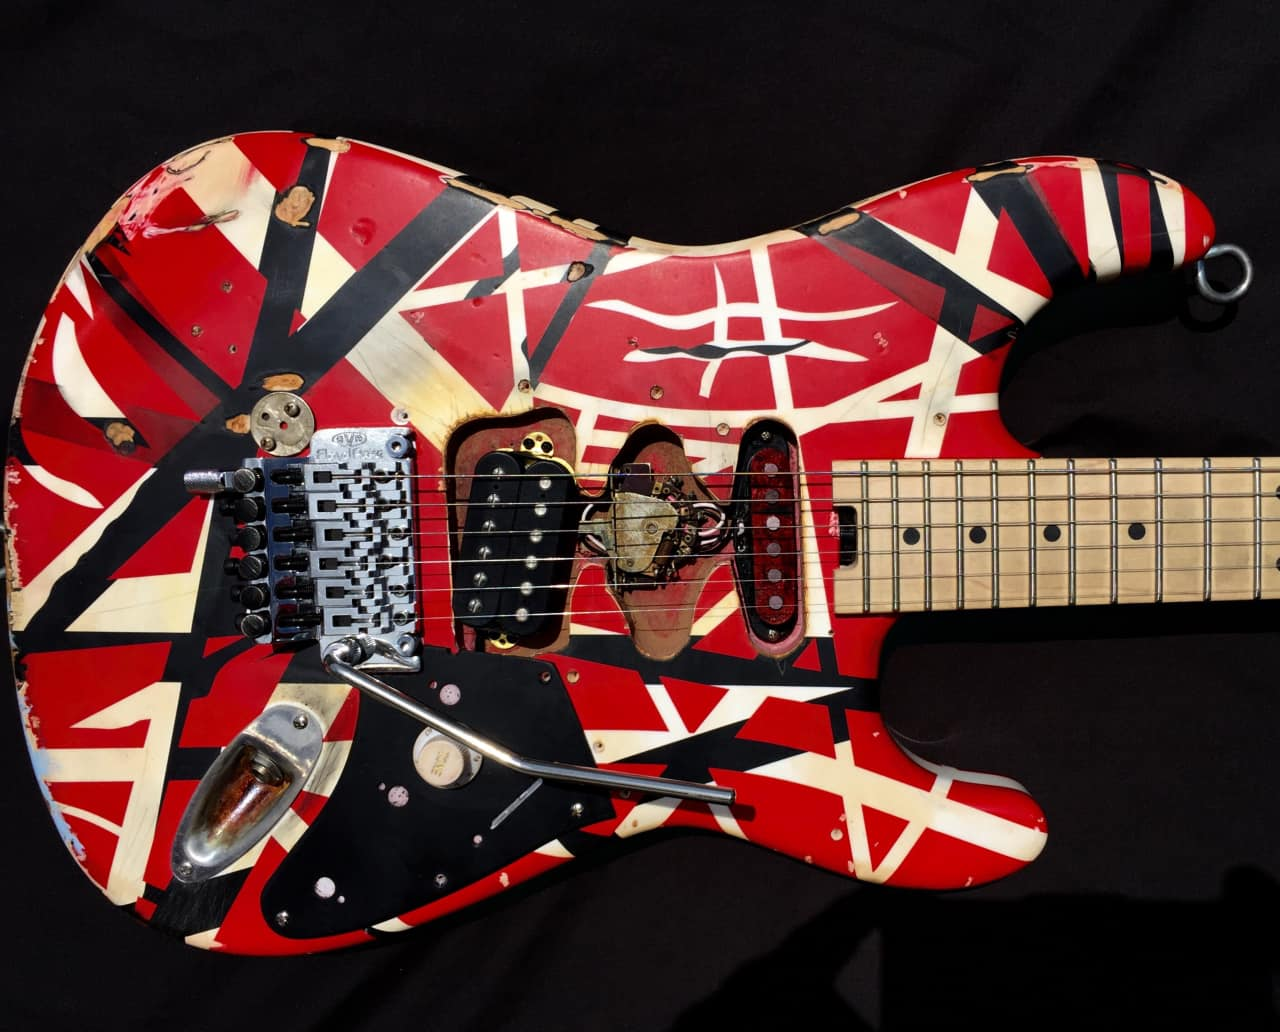 evh striped series red white black aged distressed reverb. Black Bedroom Furniture Sets. Home Design Ideas